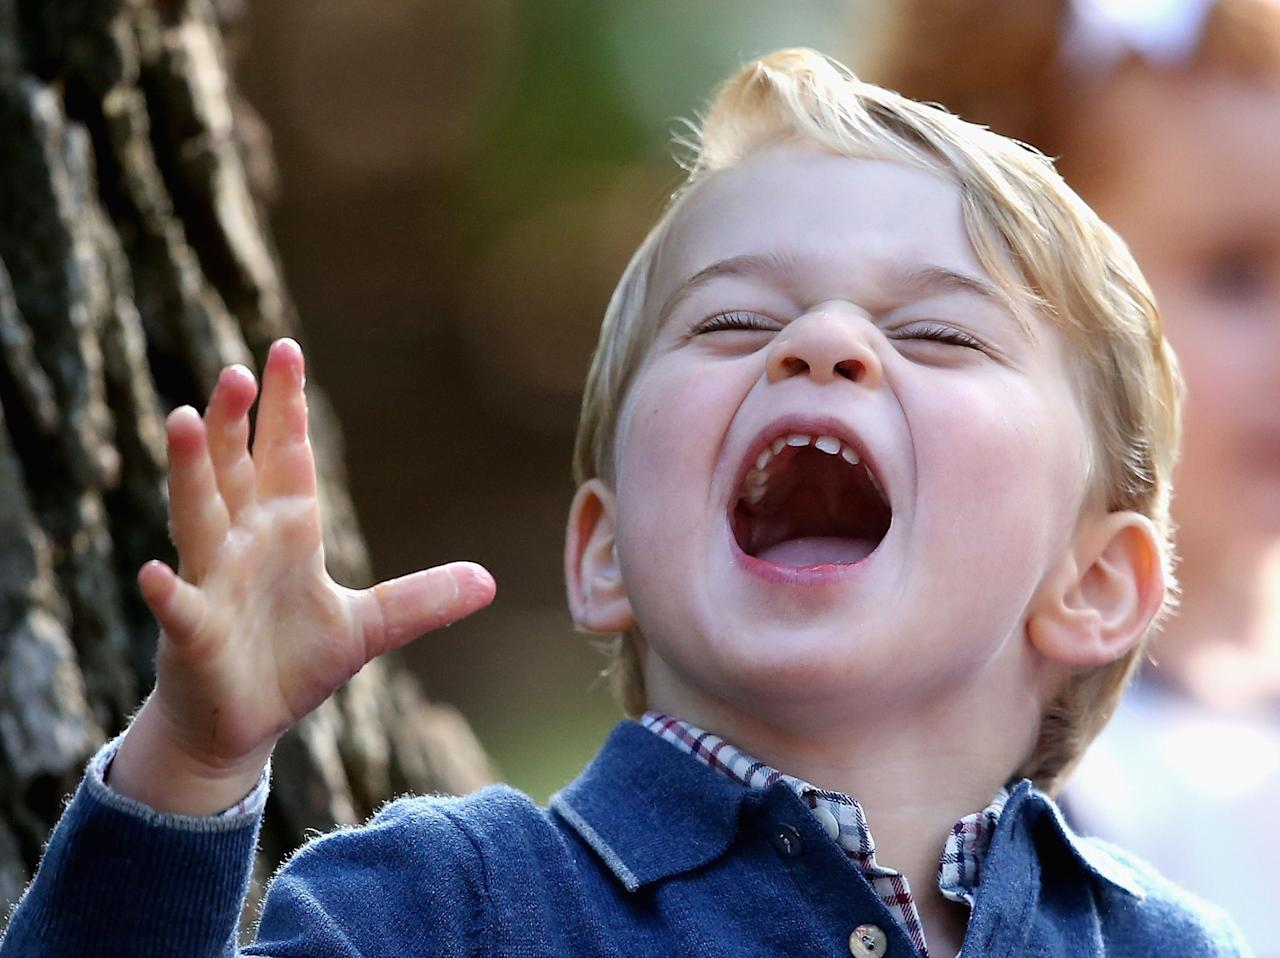 """<p>Tomorrow, Prince George turns four years old. The future king of England's adorable face never fails to make us smile, with his grumpy grimaces and jubilant grins―truly, <a href=""""http://www.elle.com/culture/celebrities/news/a25042/happy-birthday-prince-george/"""" target=""""_blank"""">there's a Prince George face</a> for <a href=""""http://www.elle.com/culture/celebrities/news/g30004/grumpy-prince-george-is-you-on-a-monday/"""" target=""""_blank"""">every mood we've ever felt</a>. Here, some of the cutest photos of the wee lad's royal visage, in honor of his birthday.</p>"""